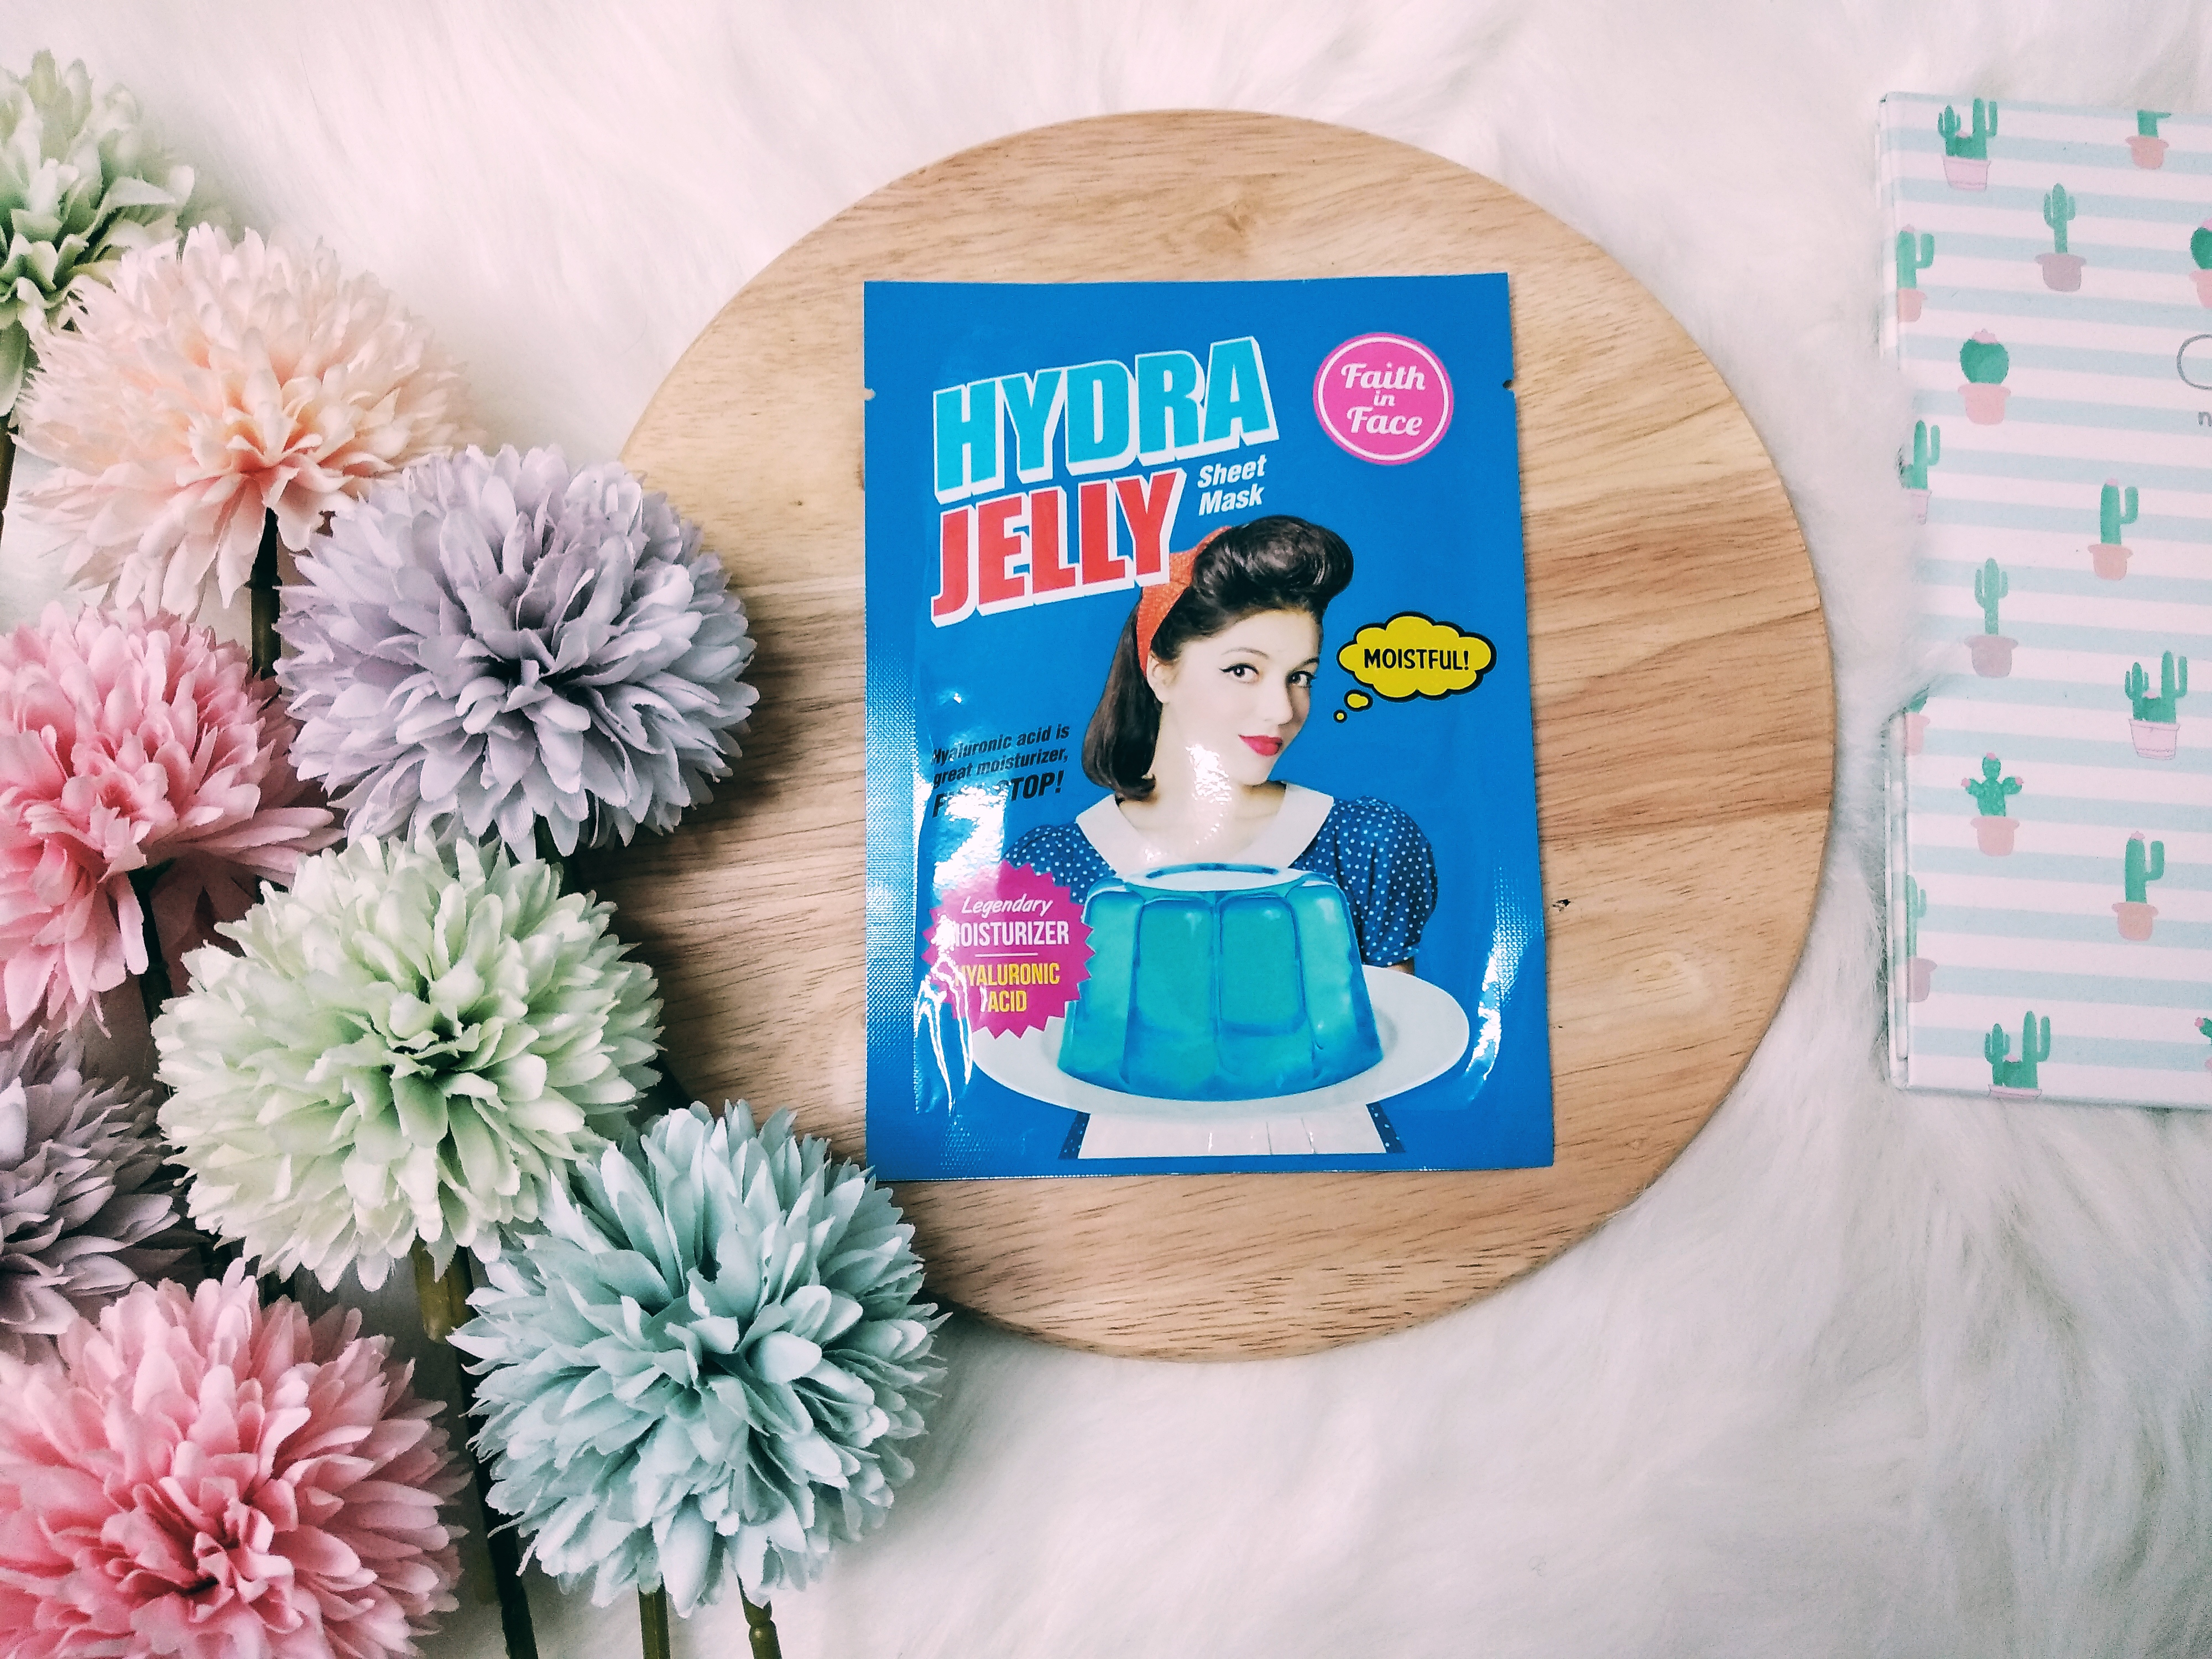 REVIEW   Faith In Face Hydra Jelly Sheet Mask